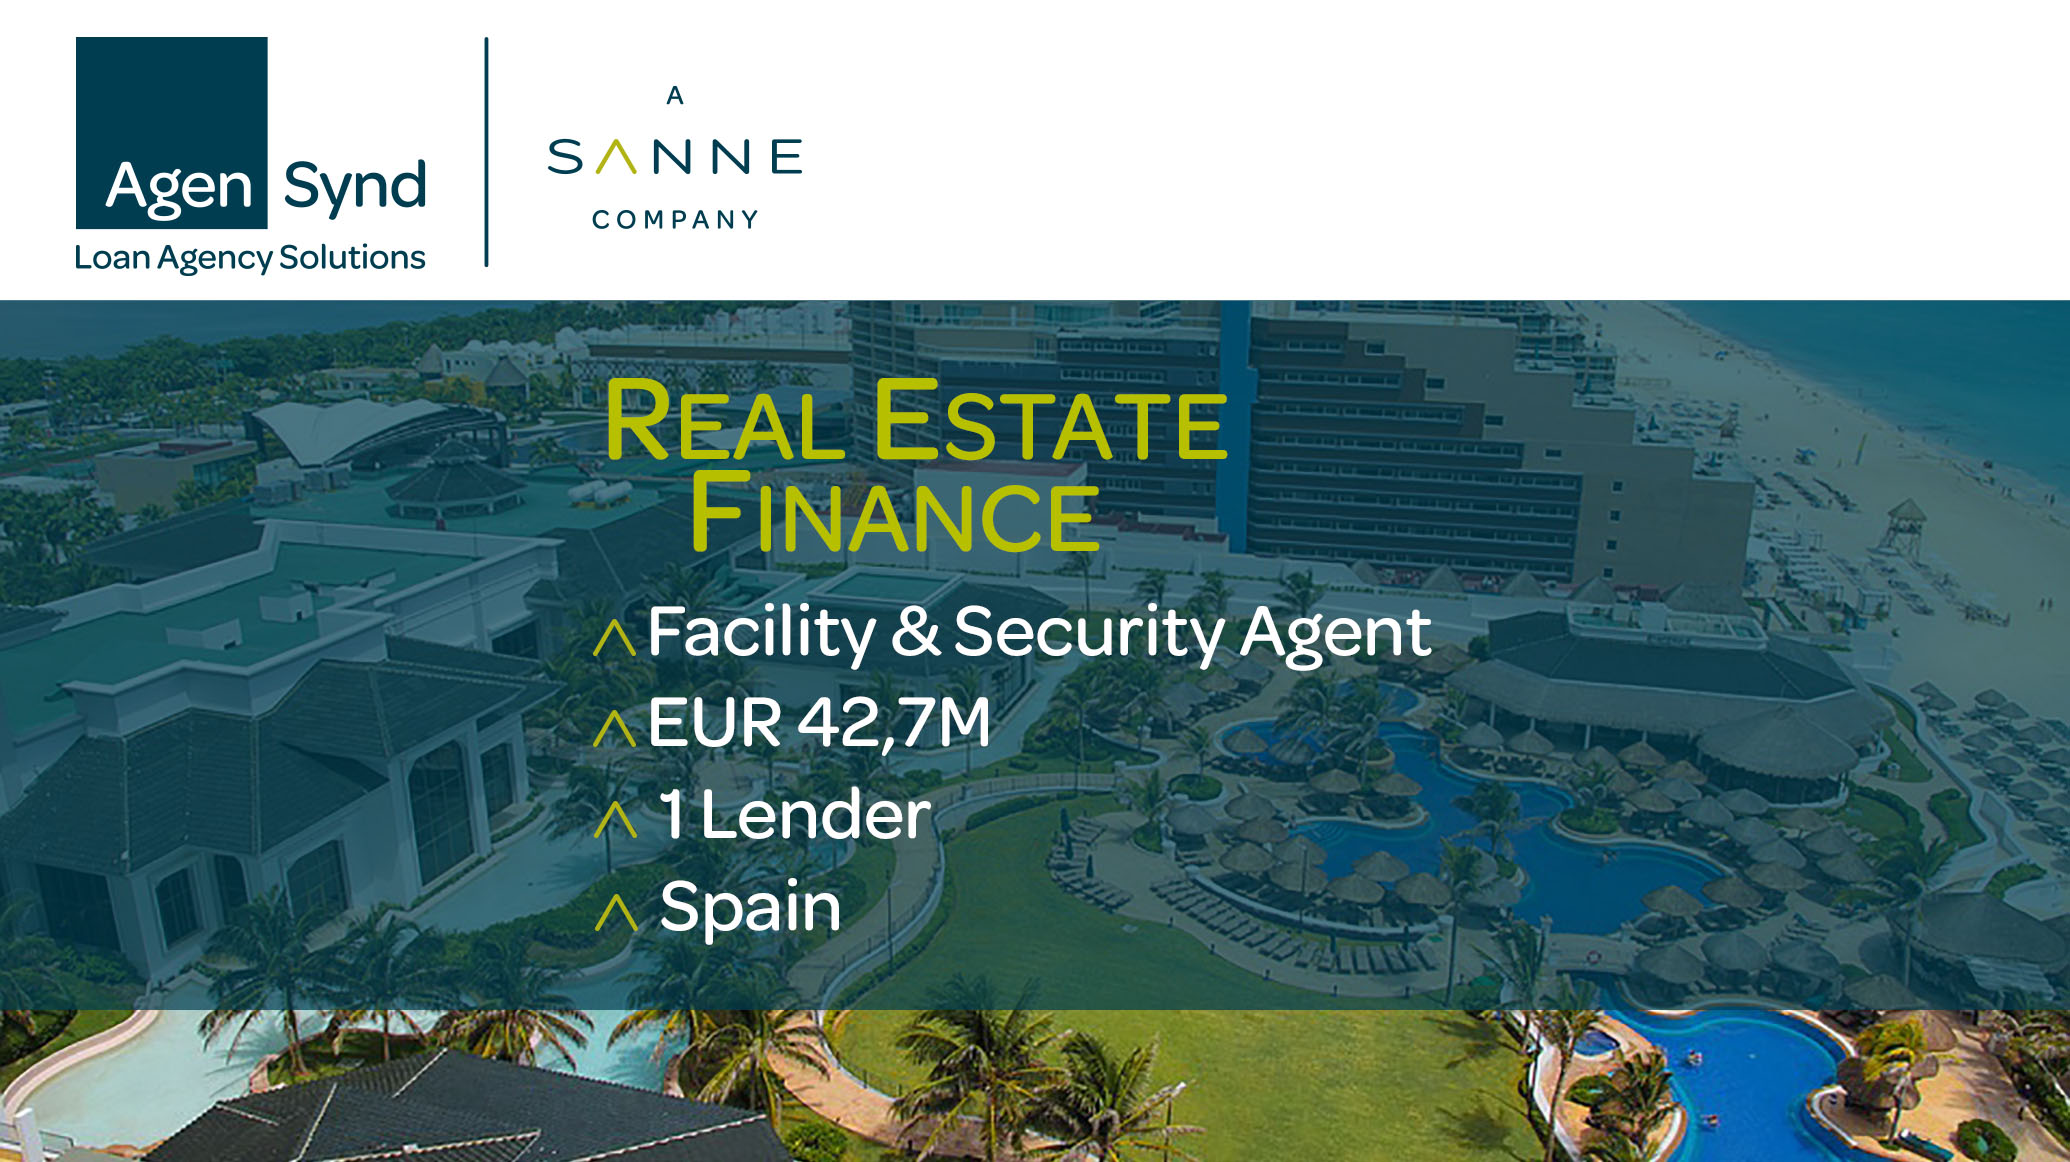 AgenSynd-Real-State-Finance